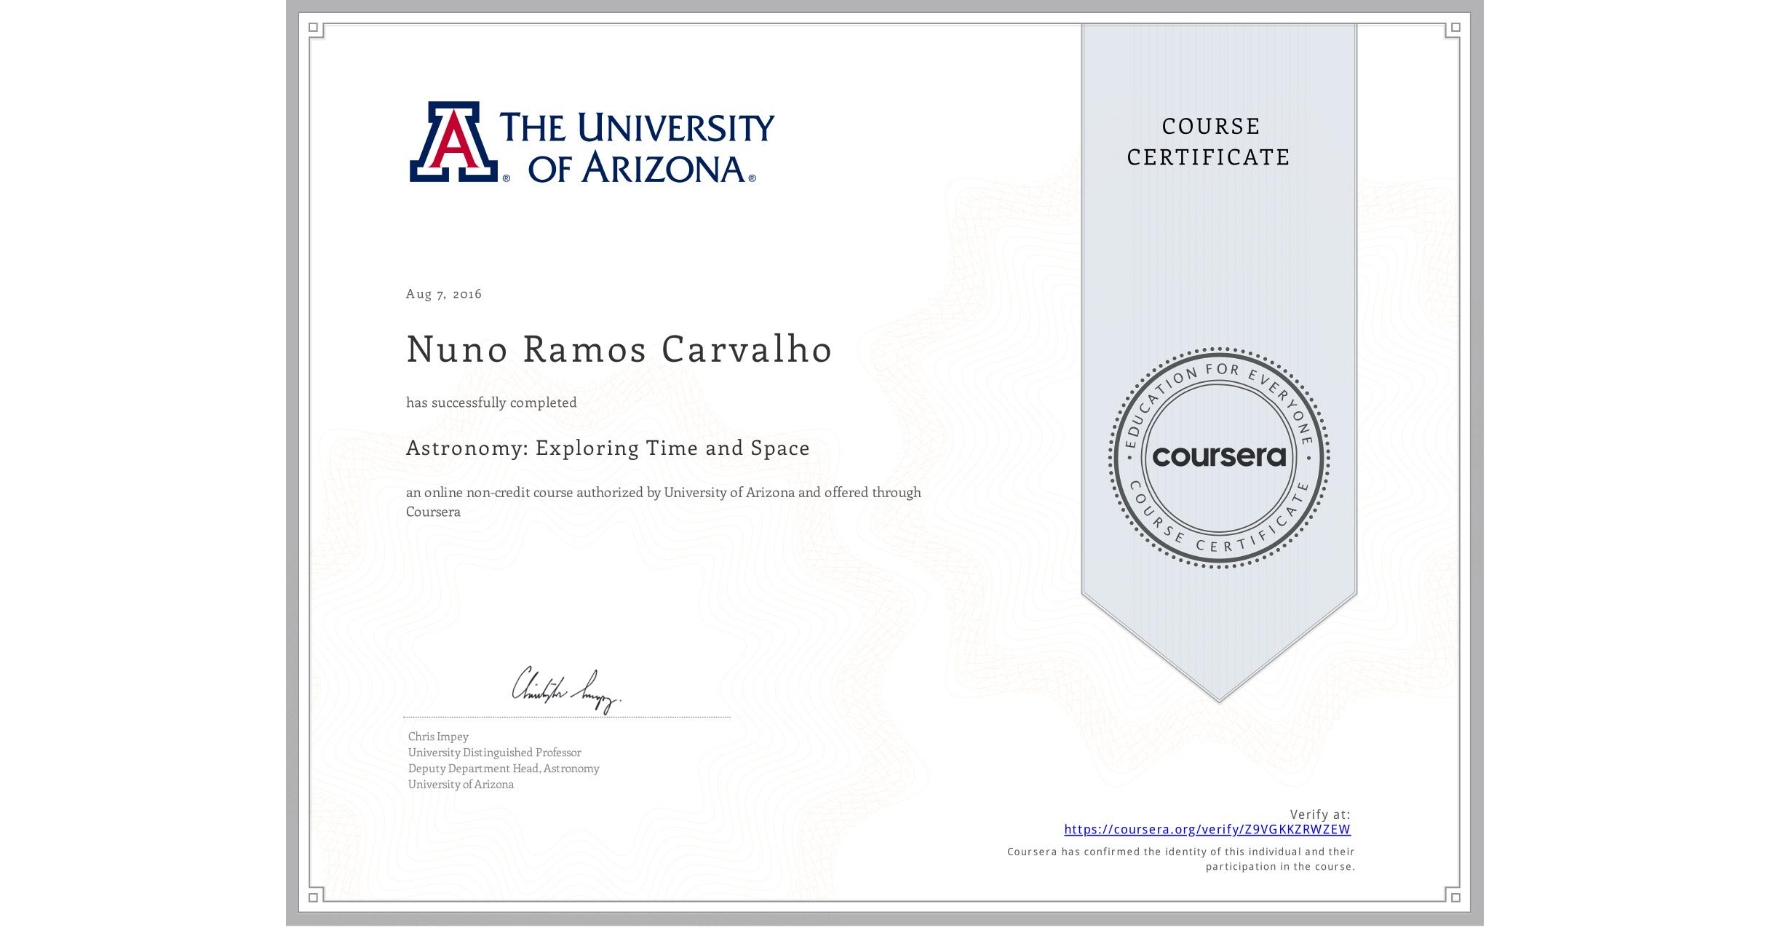 View certificate for Nuno Ramos Carvalho, Astronomy: Exploring Time and Space, an online non-credit course authorized by University of Arizona and offered through Coursera